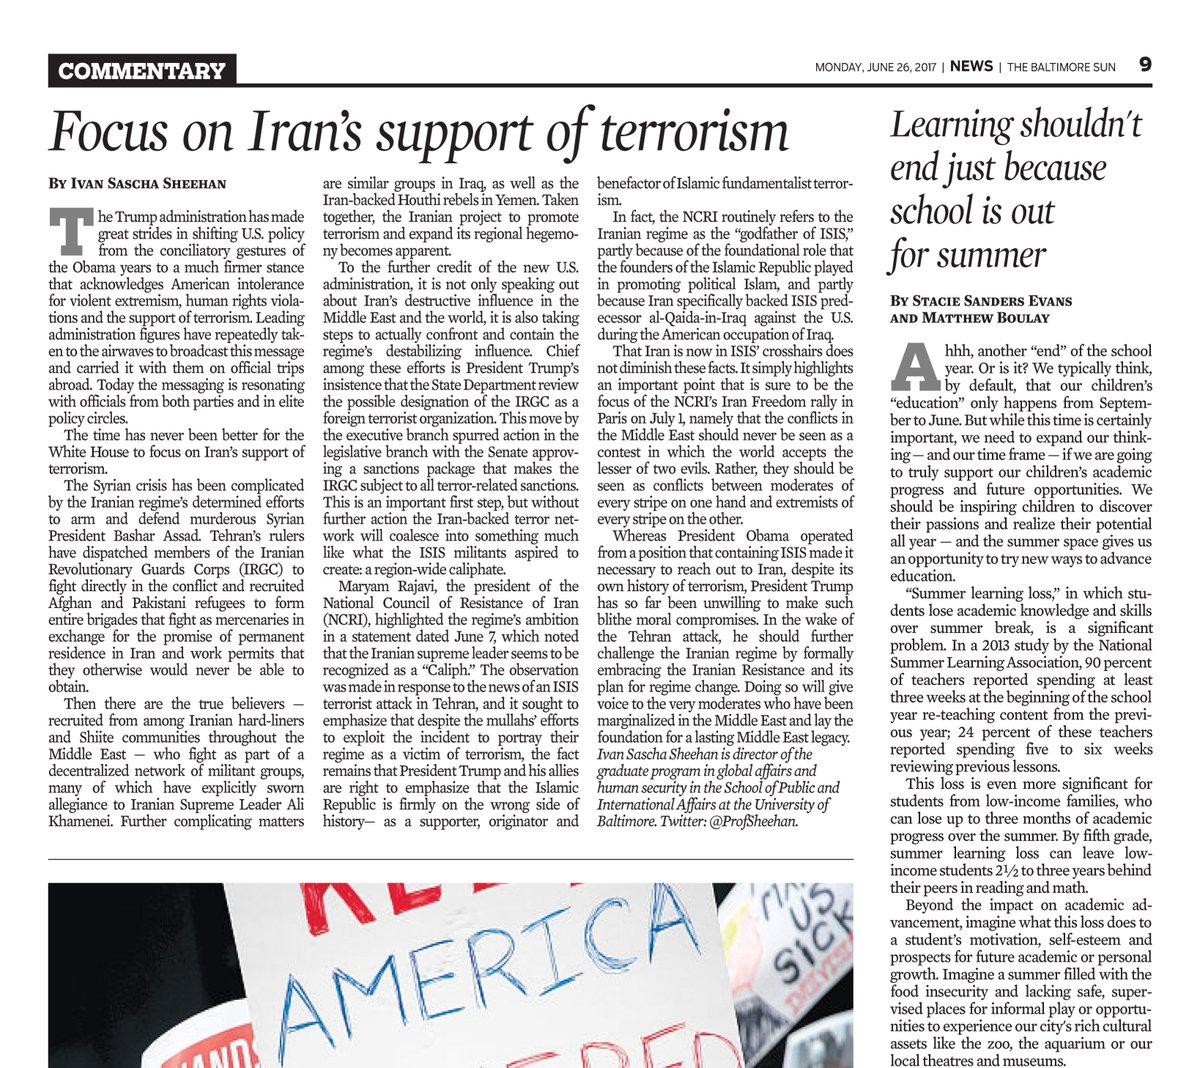 Trump is right to focus on #Iran&#39;s support of terrorism, @ProfSheehan in the @baltimoresun  http:// fw.to/Kzhi5bl  &nbsp;   #FreeIran #BlacklistIRGC<br>http://pic.twitter.com/F9yVY5ObZD